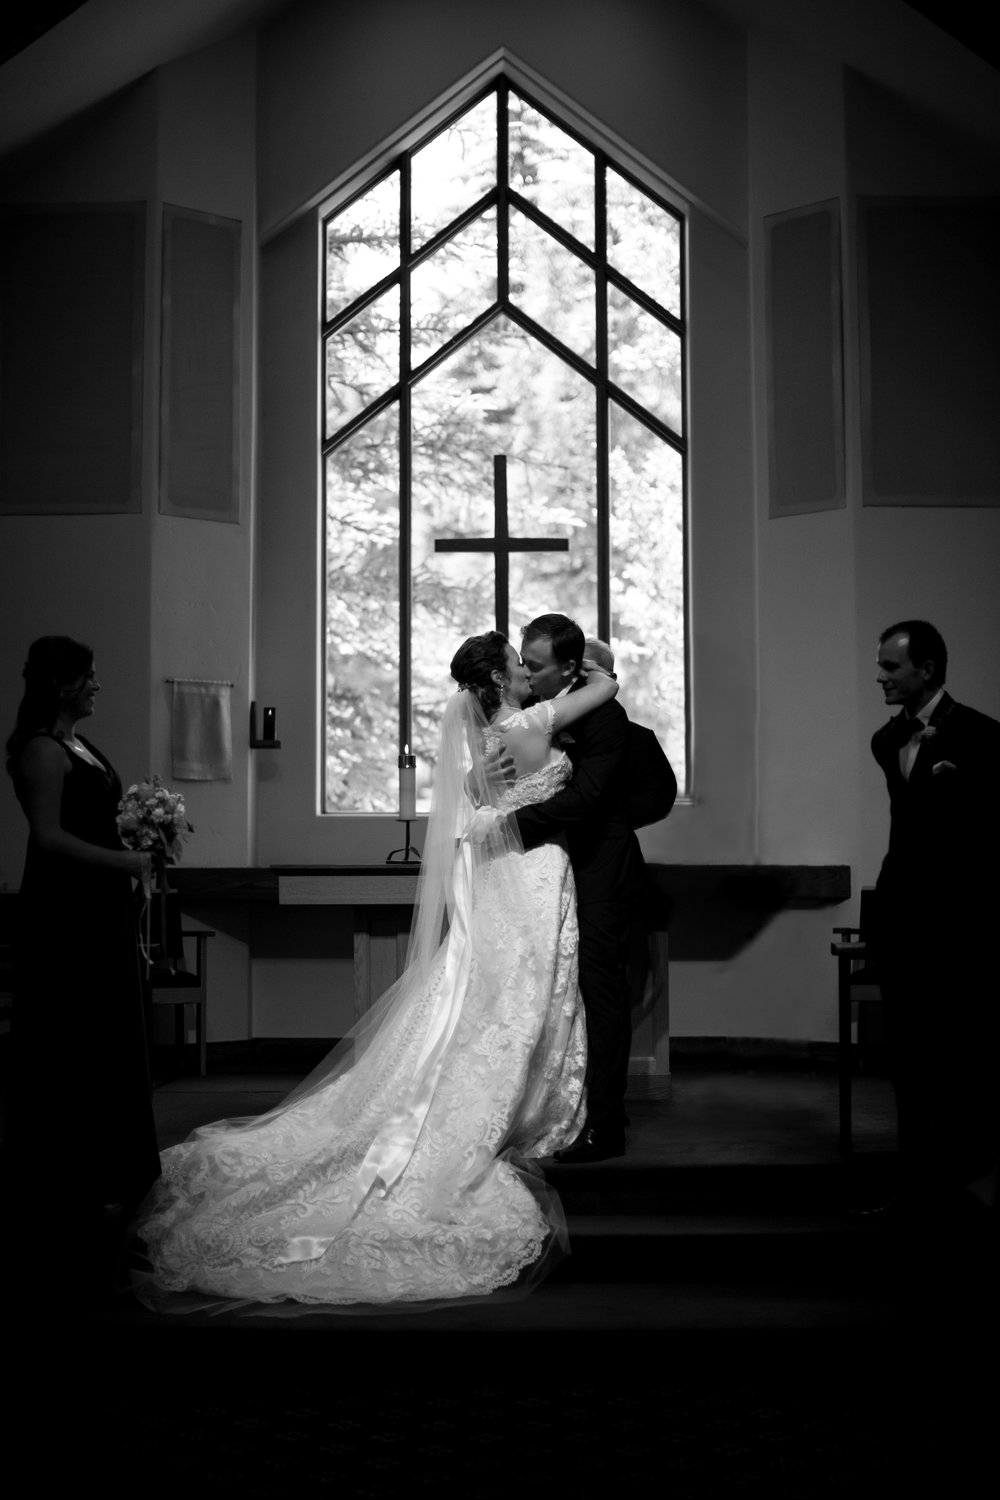 Baddick Wedding B&W-5 copy.jpg